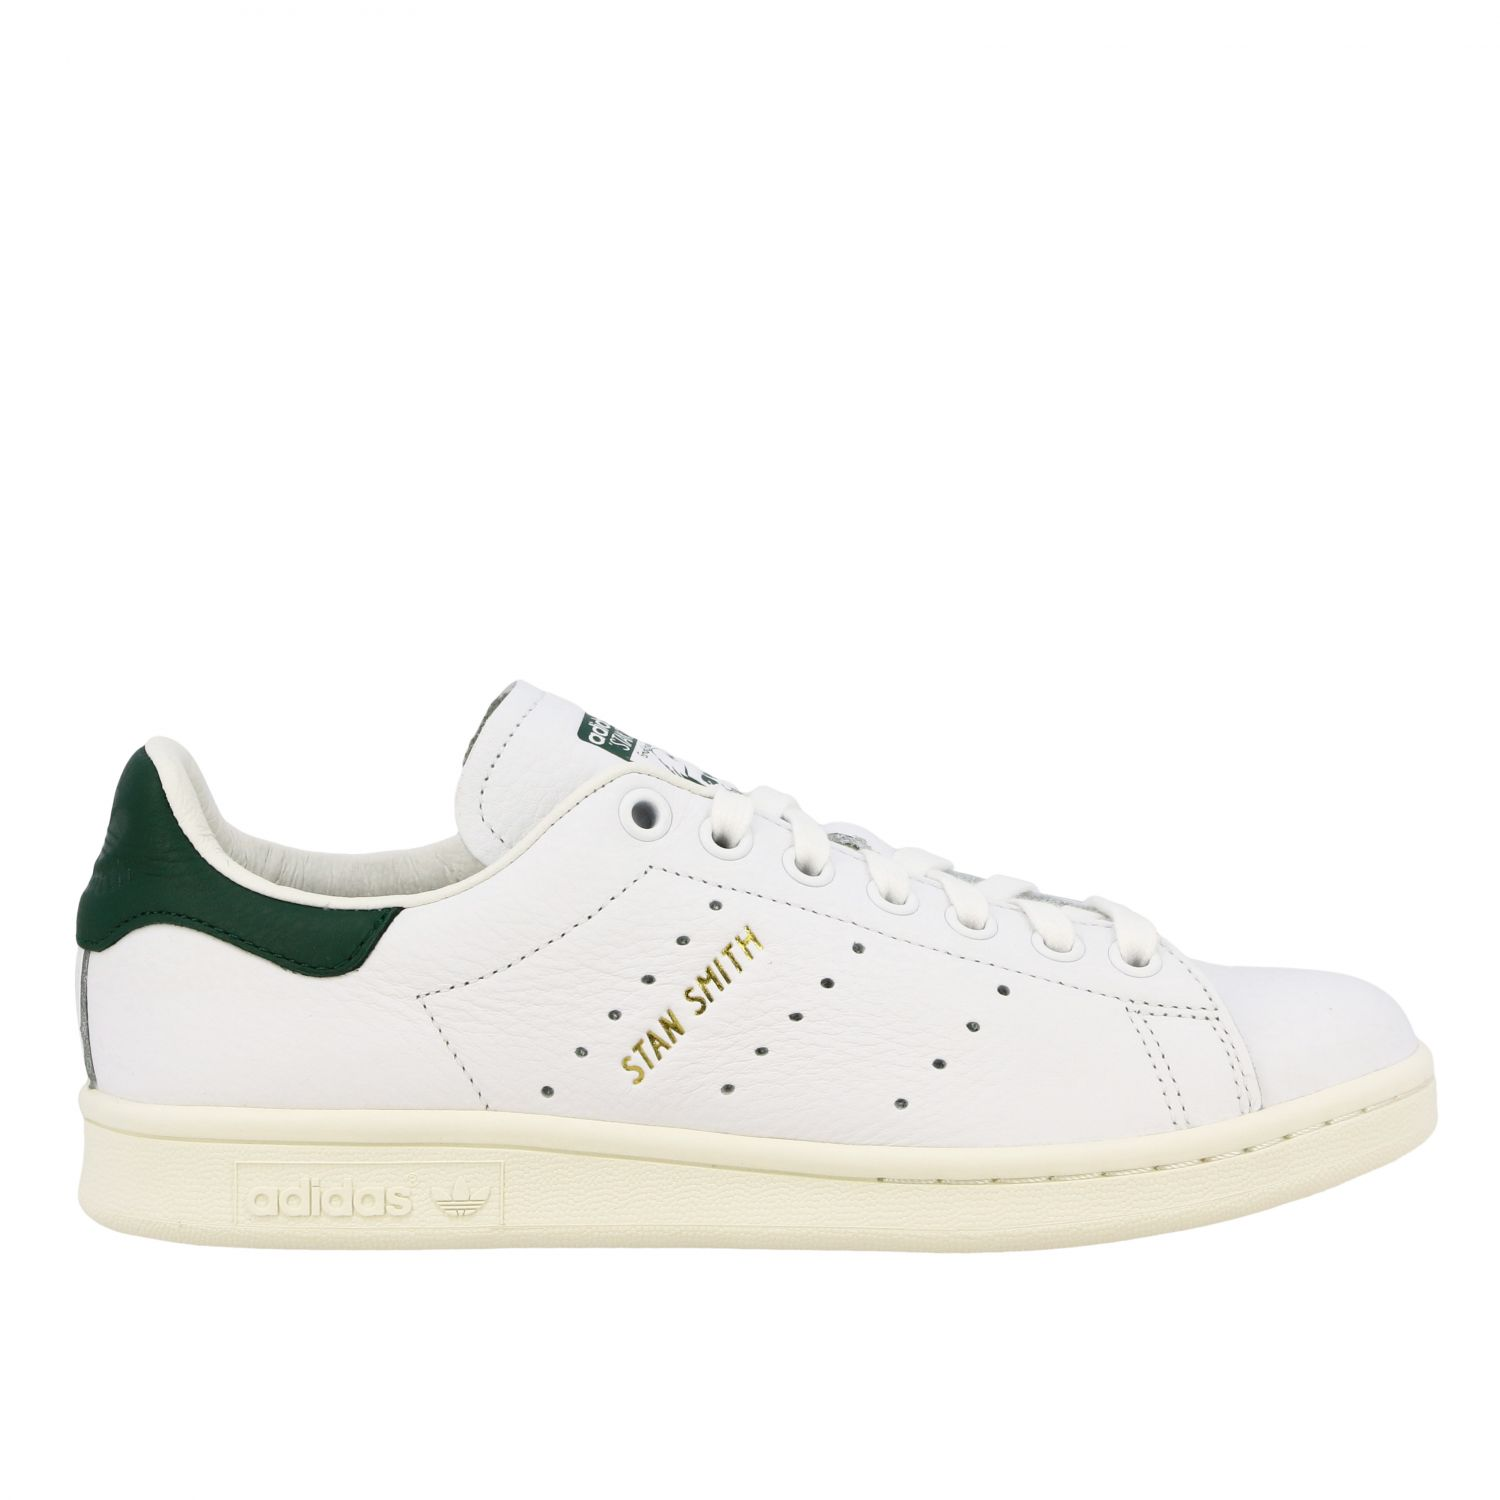 Sneakers Adidas Originals: Sneakers Stan smith Adidas Originals in pelle bianco 1